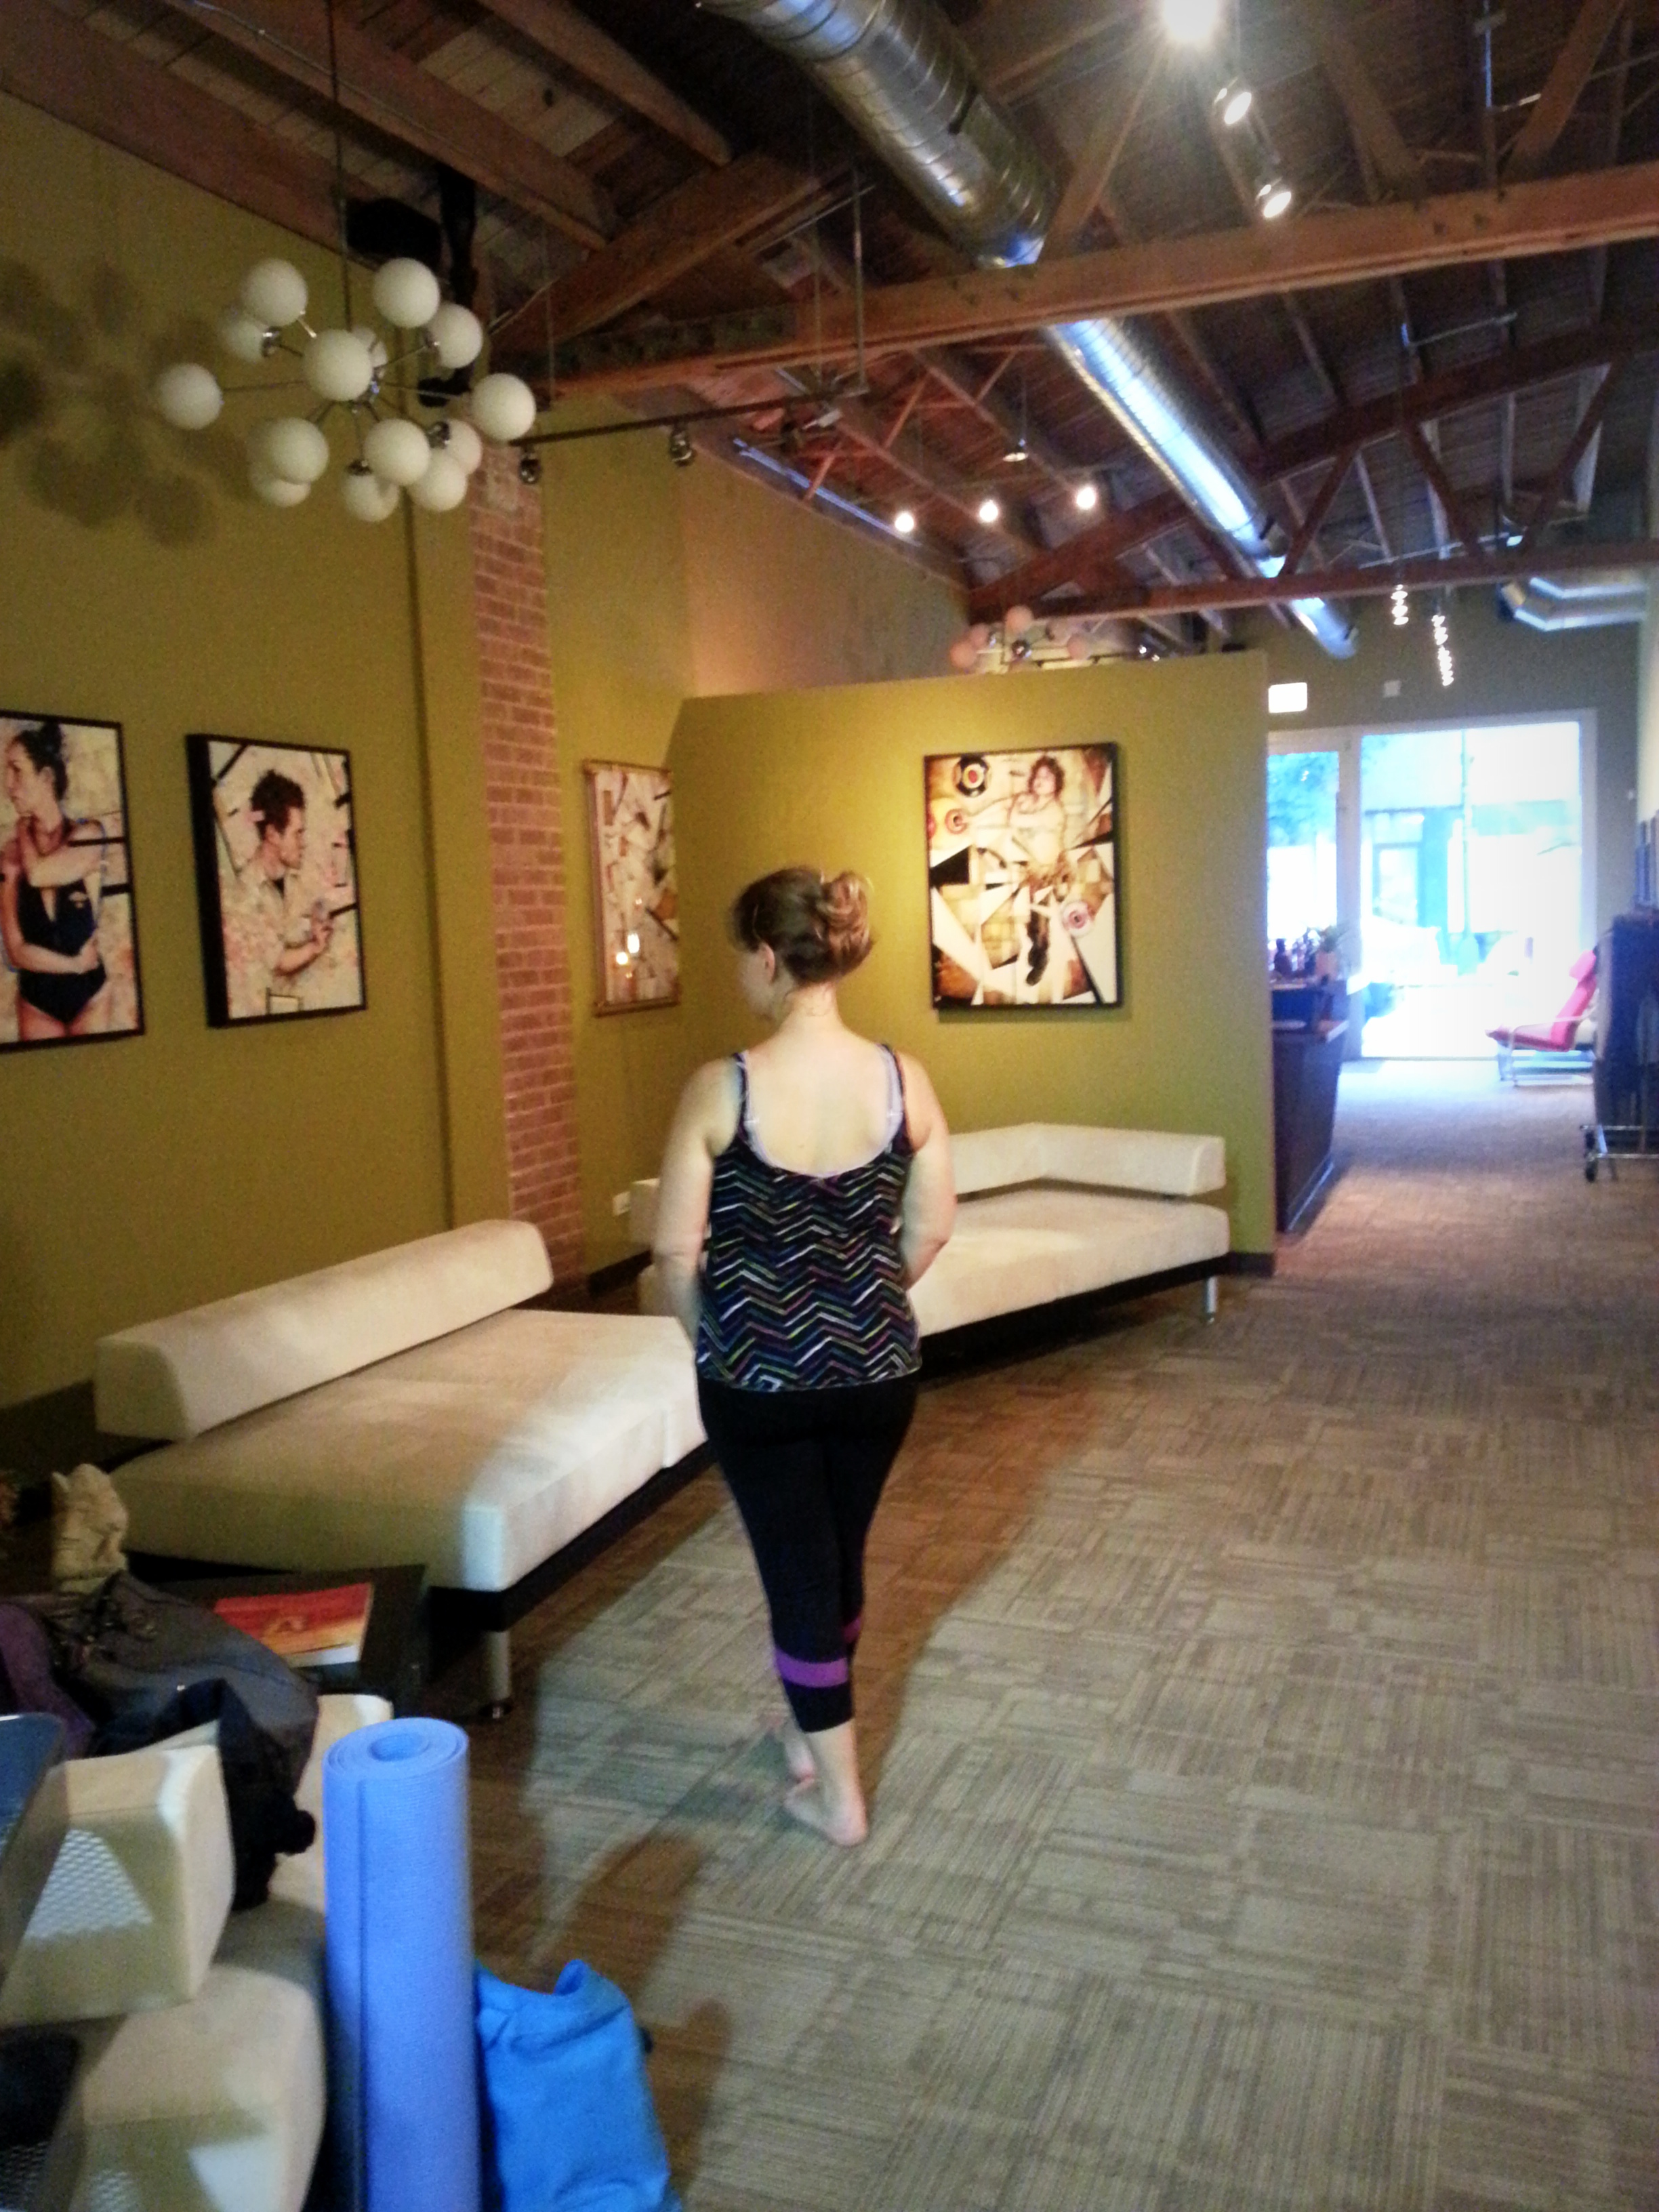 Zen Yoga Garage Is Unassumingly Tucked On Milwaukee Avenue In Between Western And Leavitt The Stand Out Feature It Literally Housed A Space